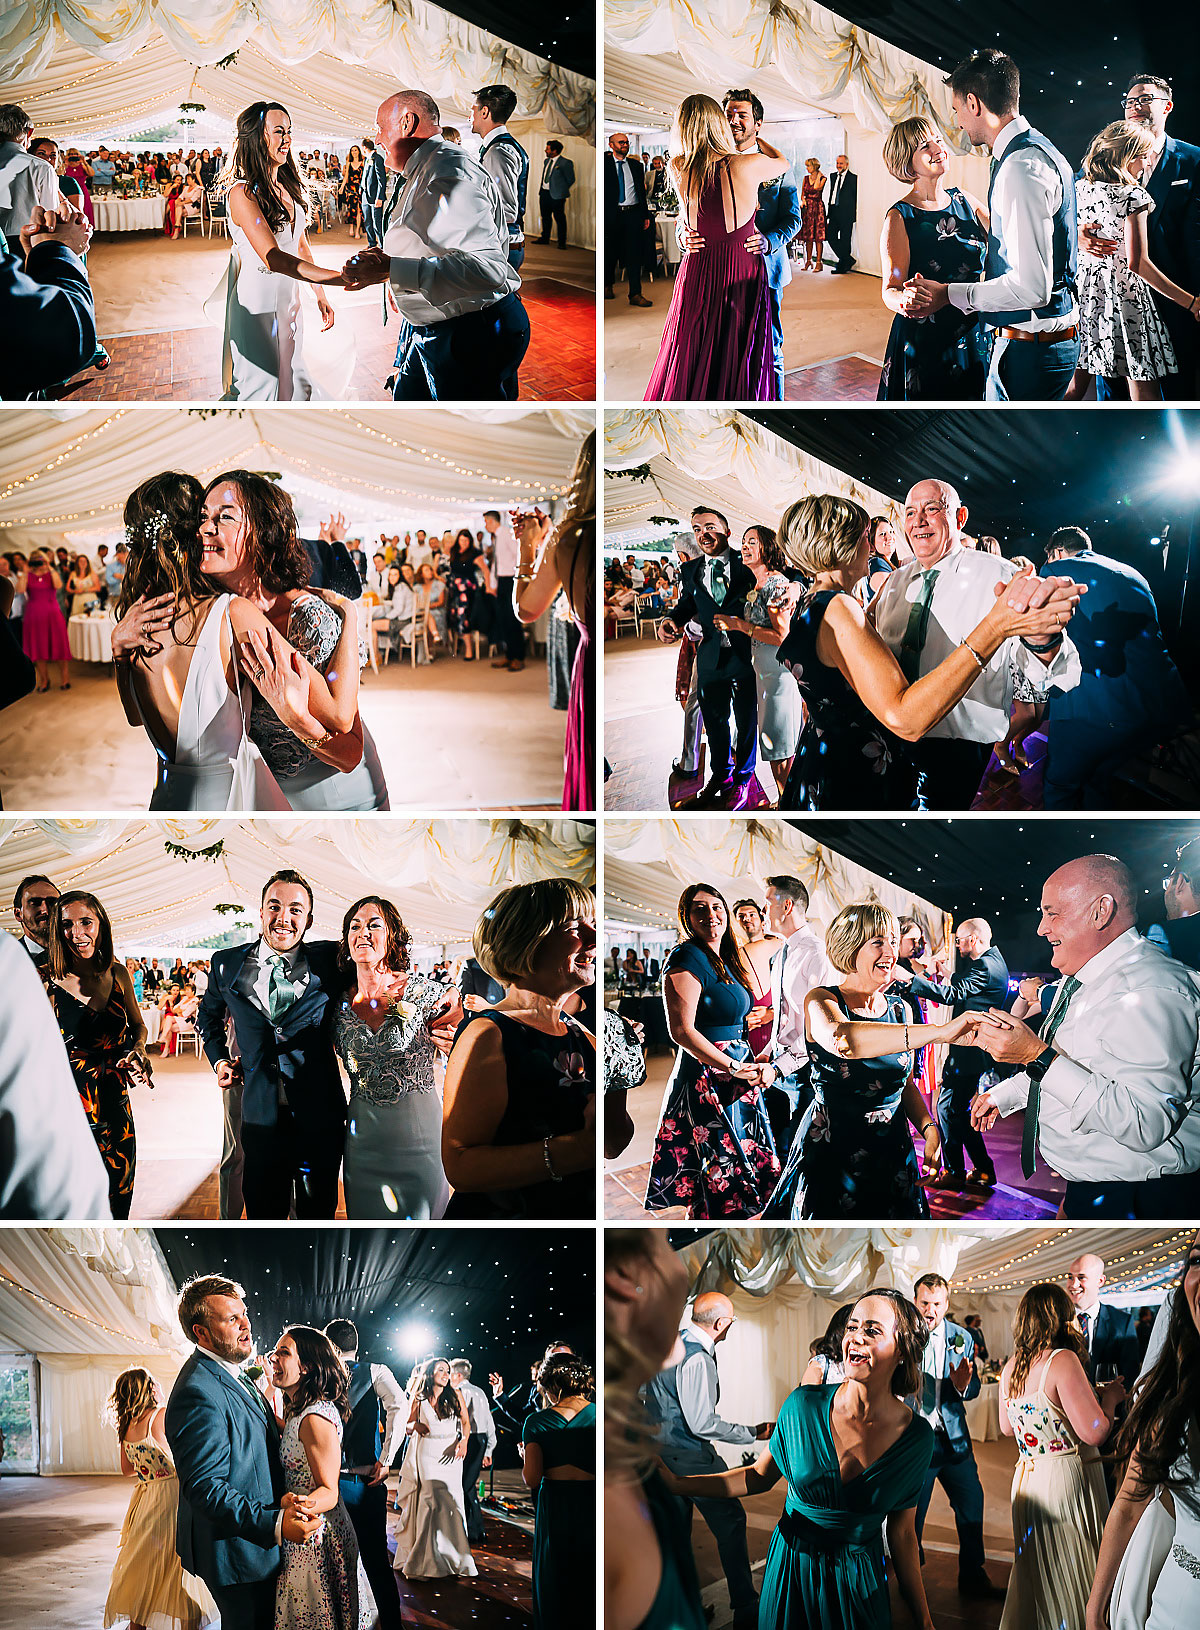 party wedding dancing at Hamswell House